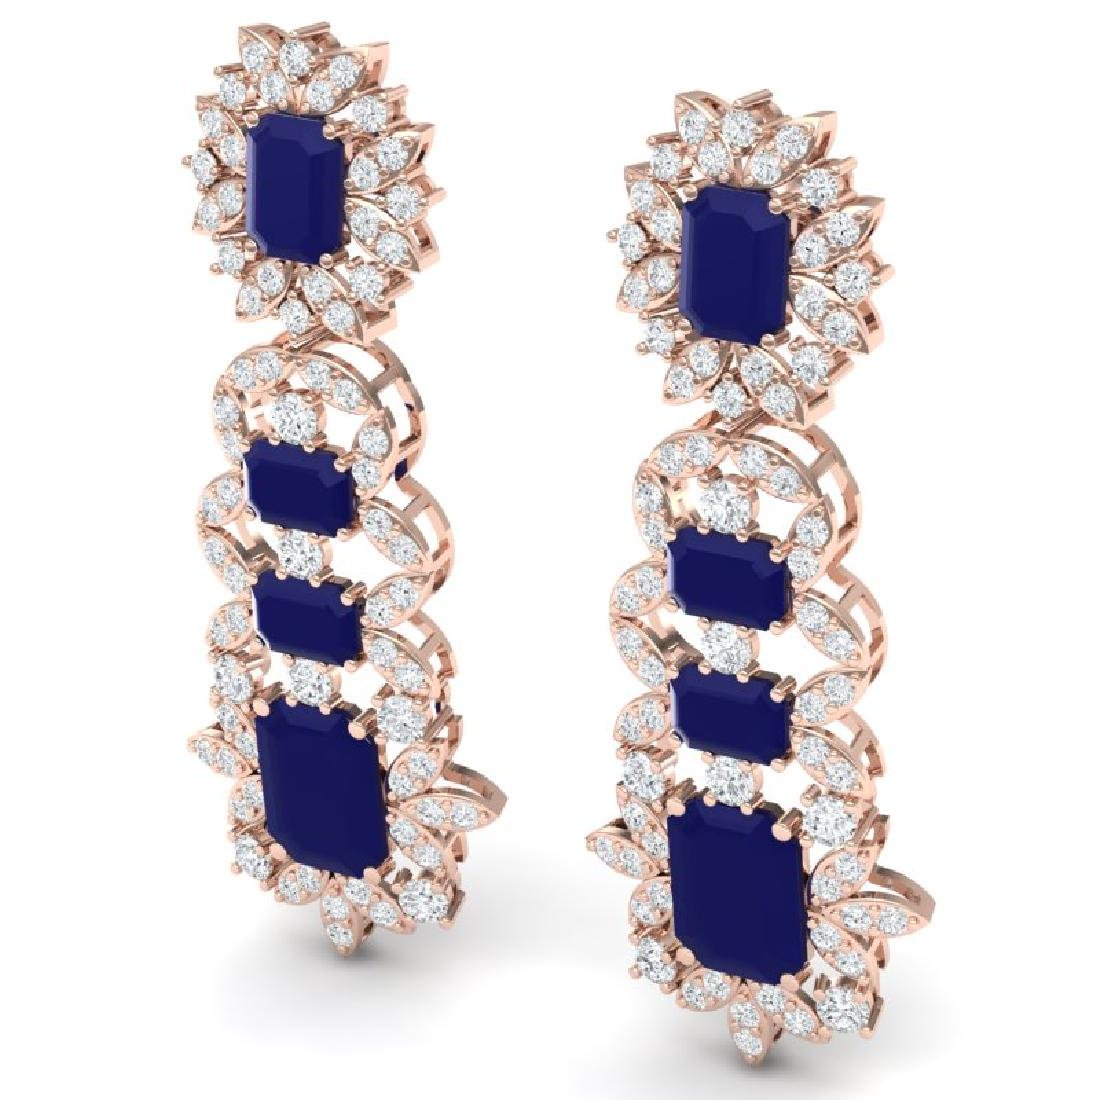 30.25 CTW Royalty Sapphire & VS Diamond Earrings 18K - 2